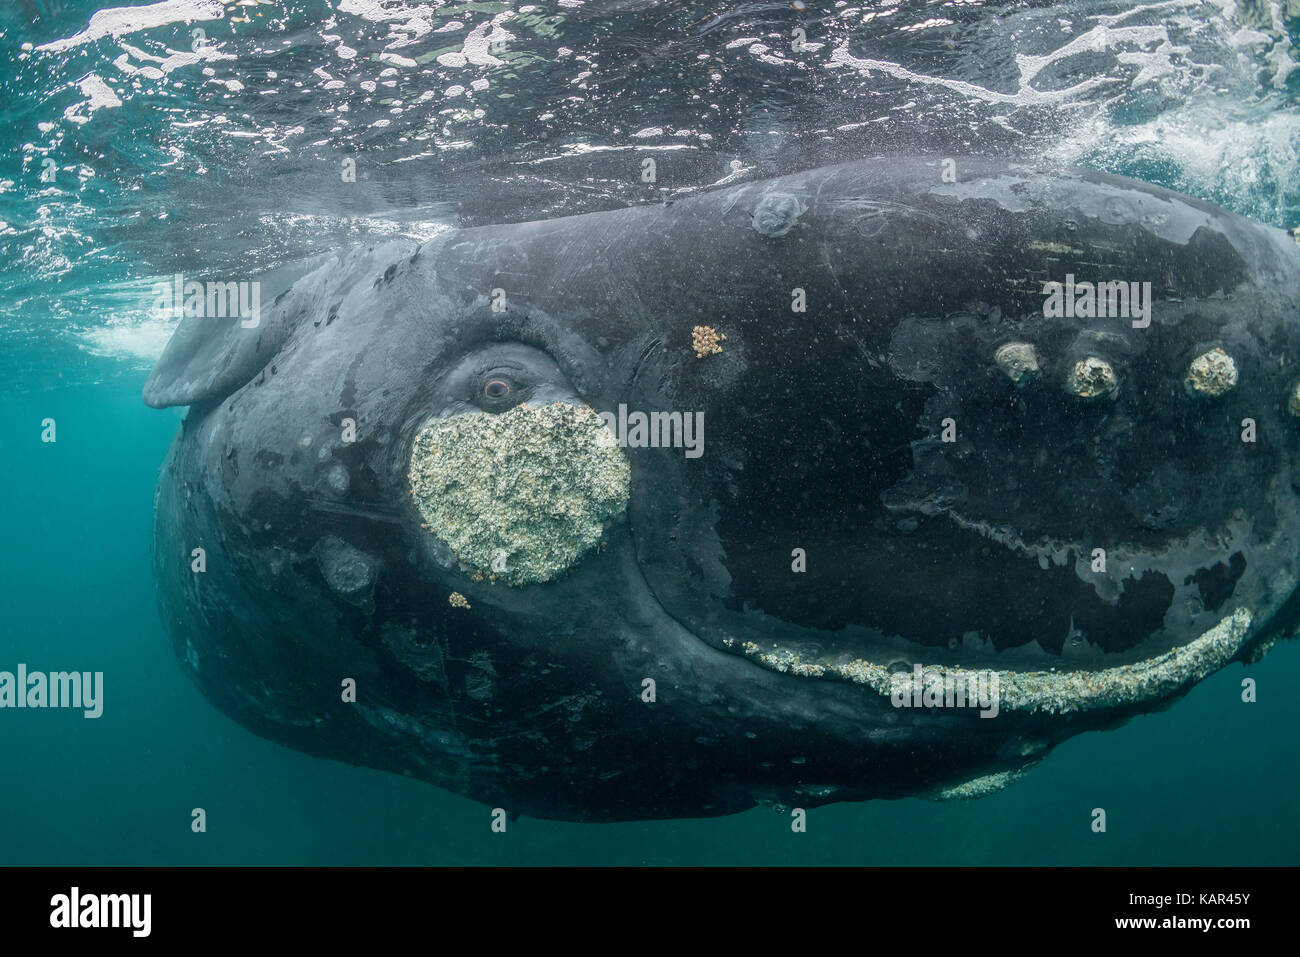 Extreme close up of a curious southern right whale rolling about at the surface, Valdes Peninsula, Patagonia, Argentina. - Stock Image